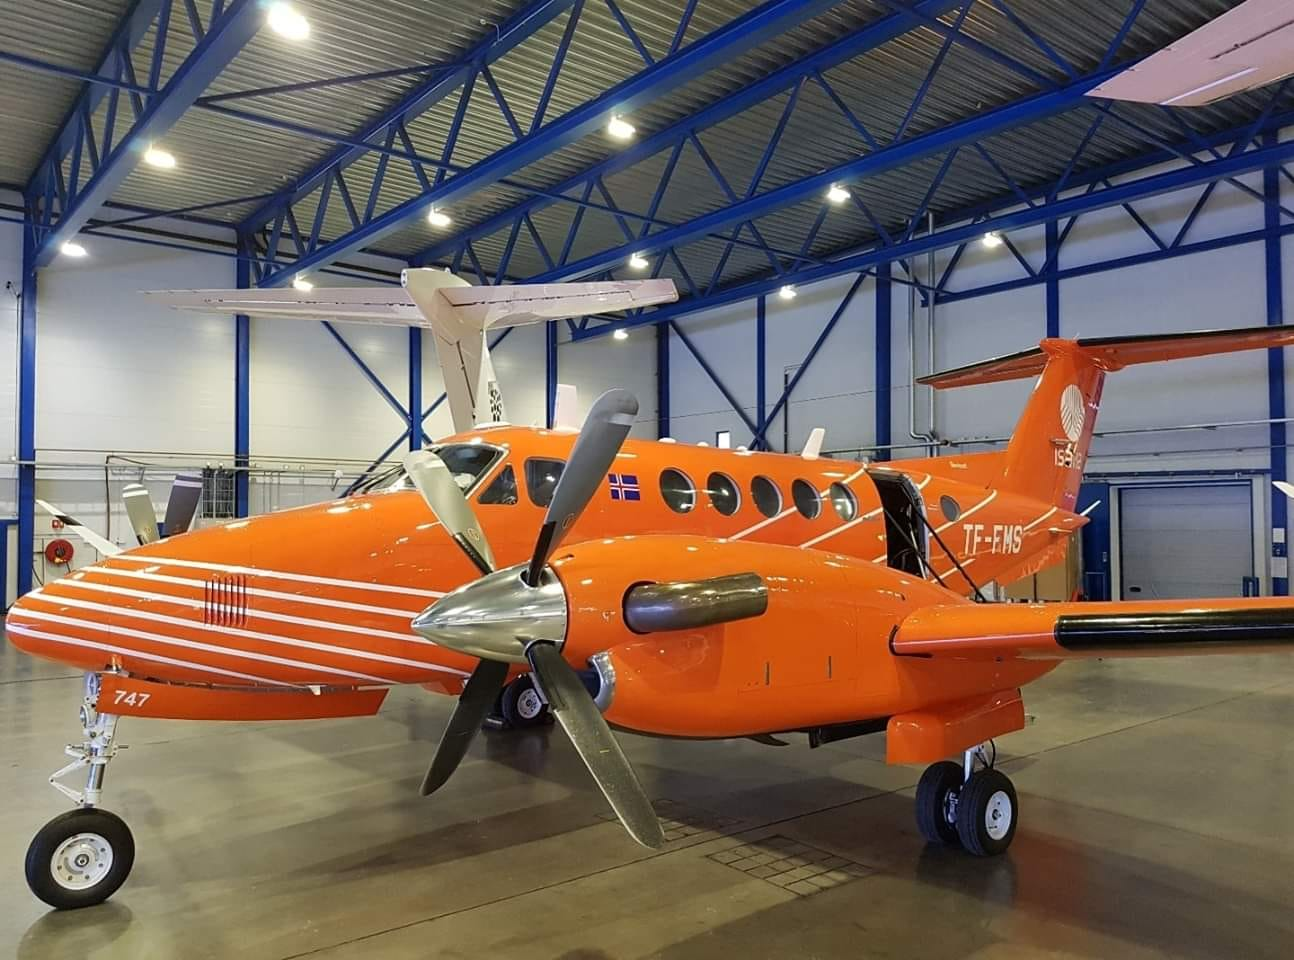 The first photo of Isavia Beechcraft King Air B200 reg. TF-FMS after obtaining the new orange livery in Reykjavik (BIRK) in February // Source: Ragnar Þór